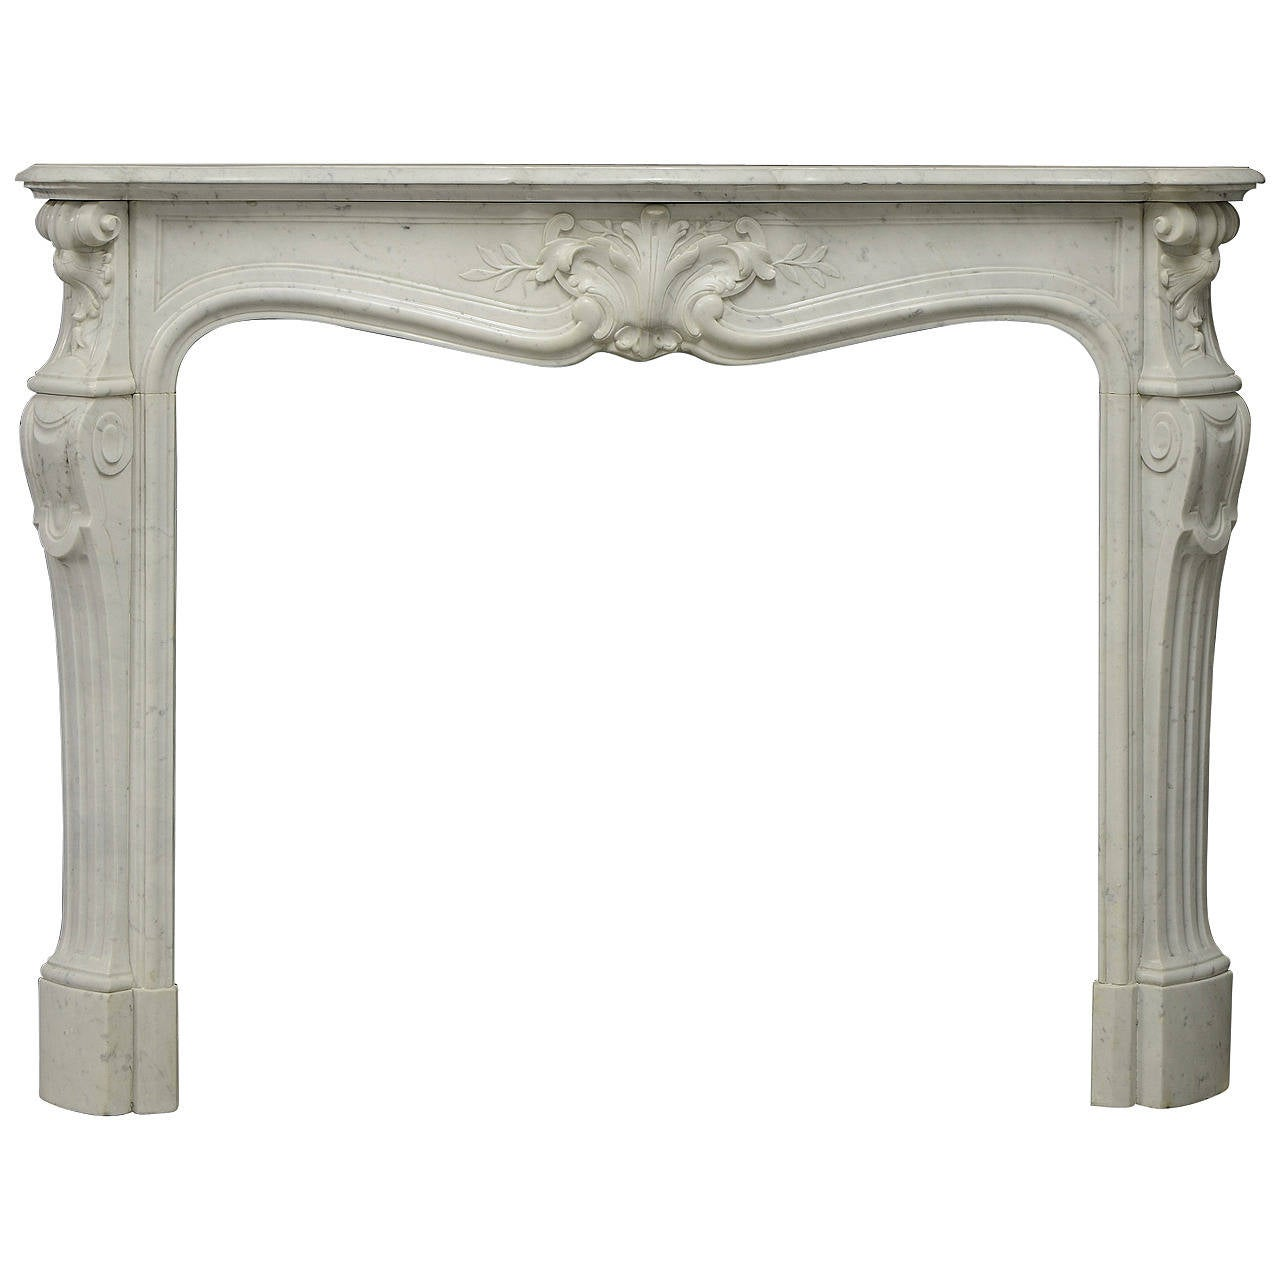 antique fireplace mantel in white marble very elegant french louis